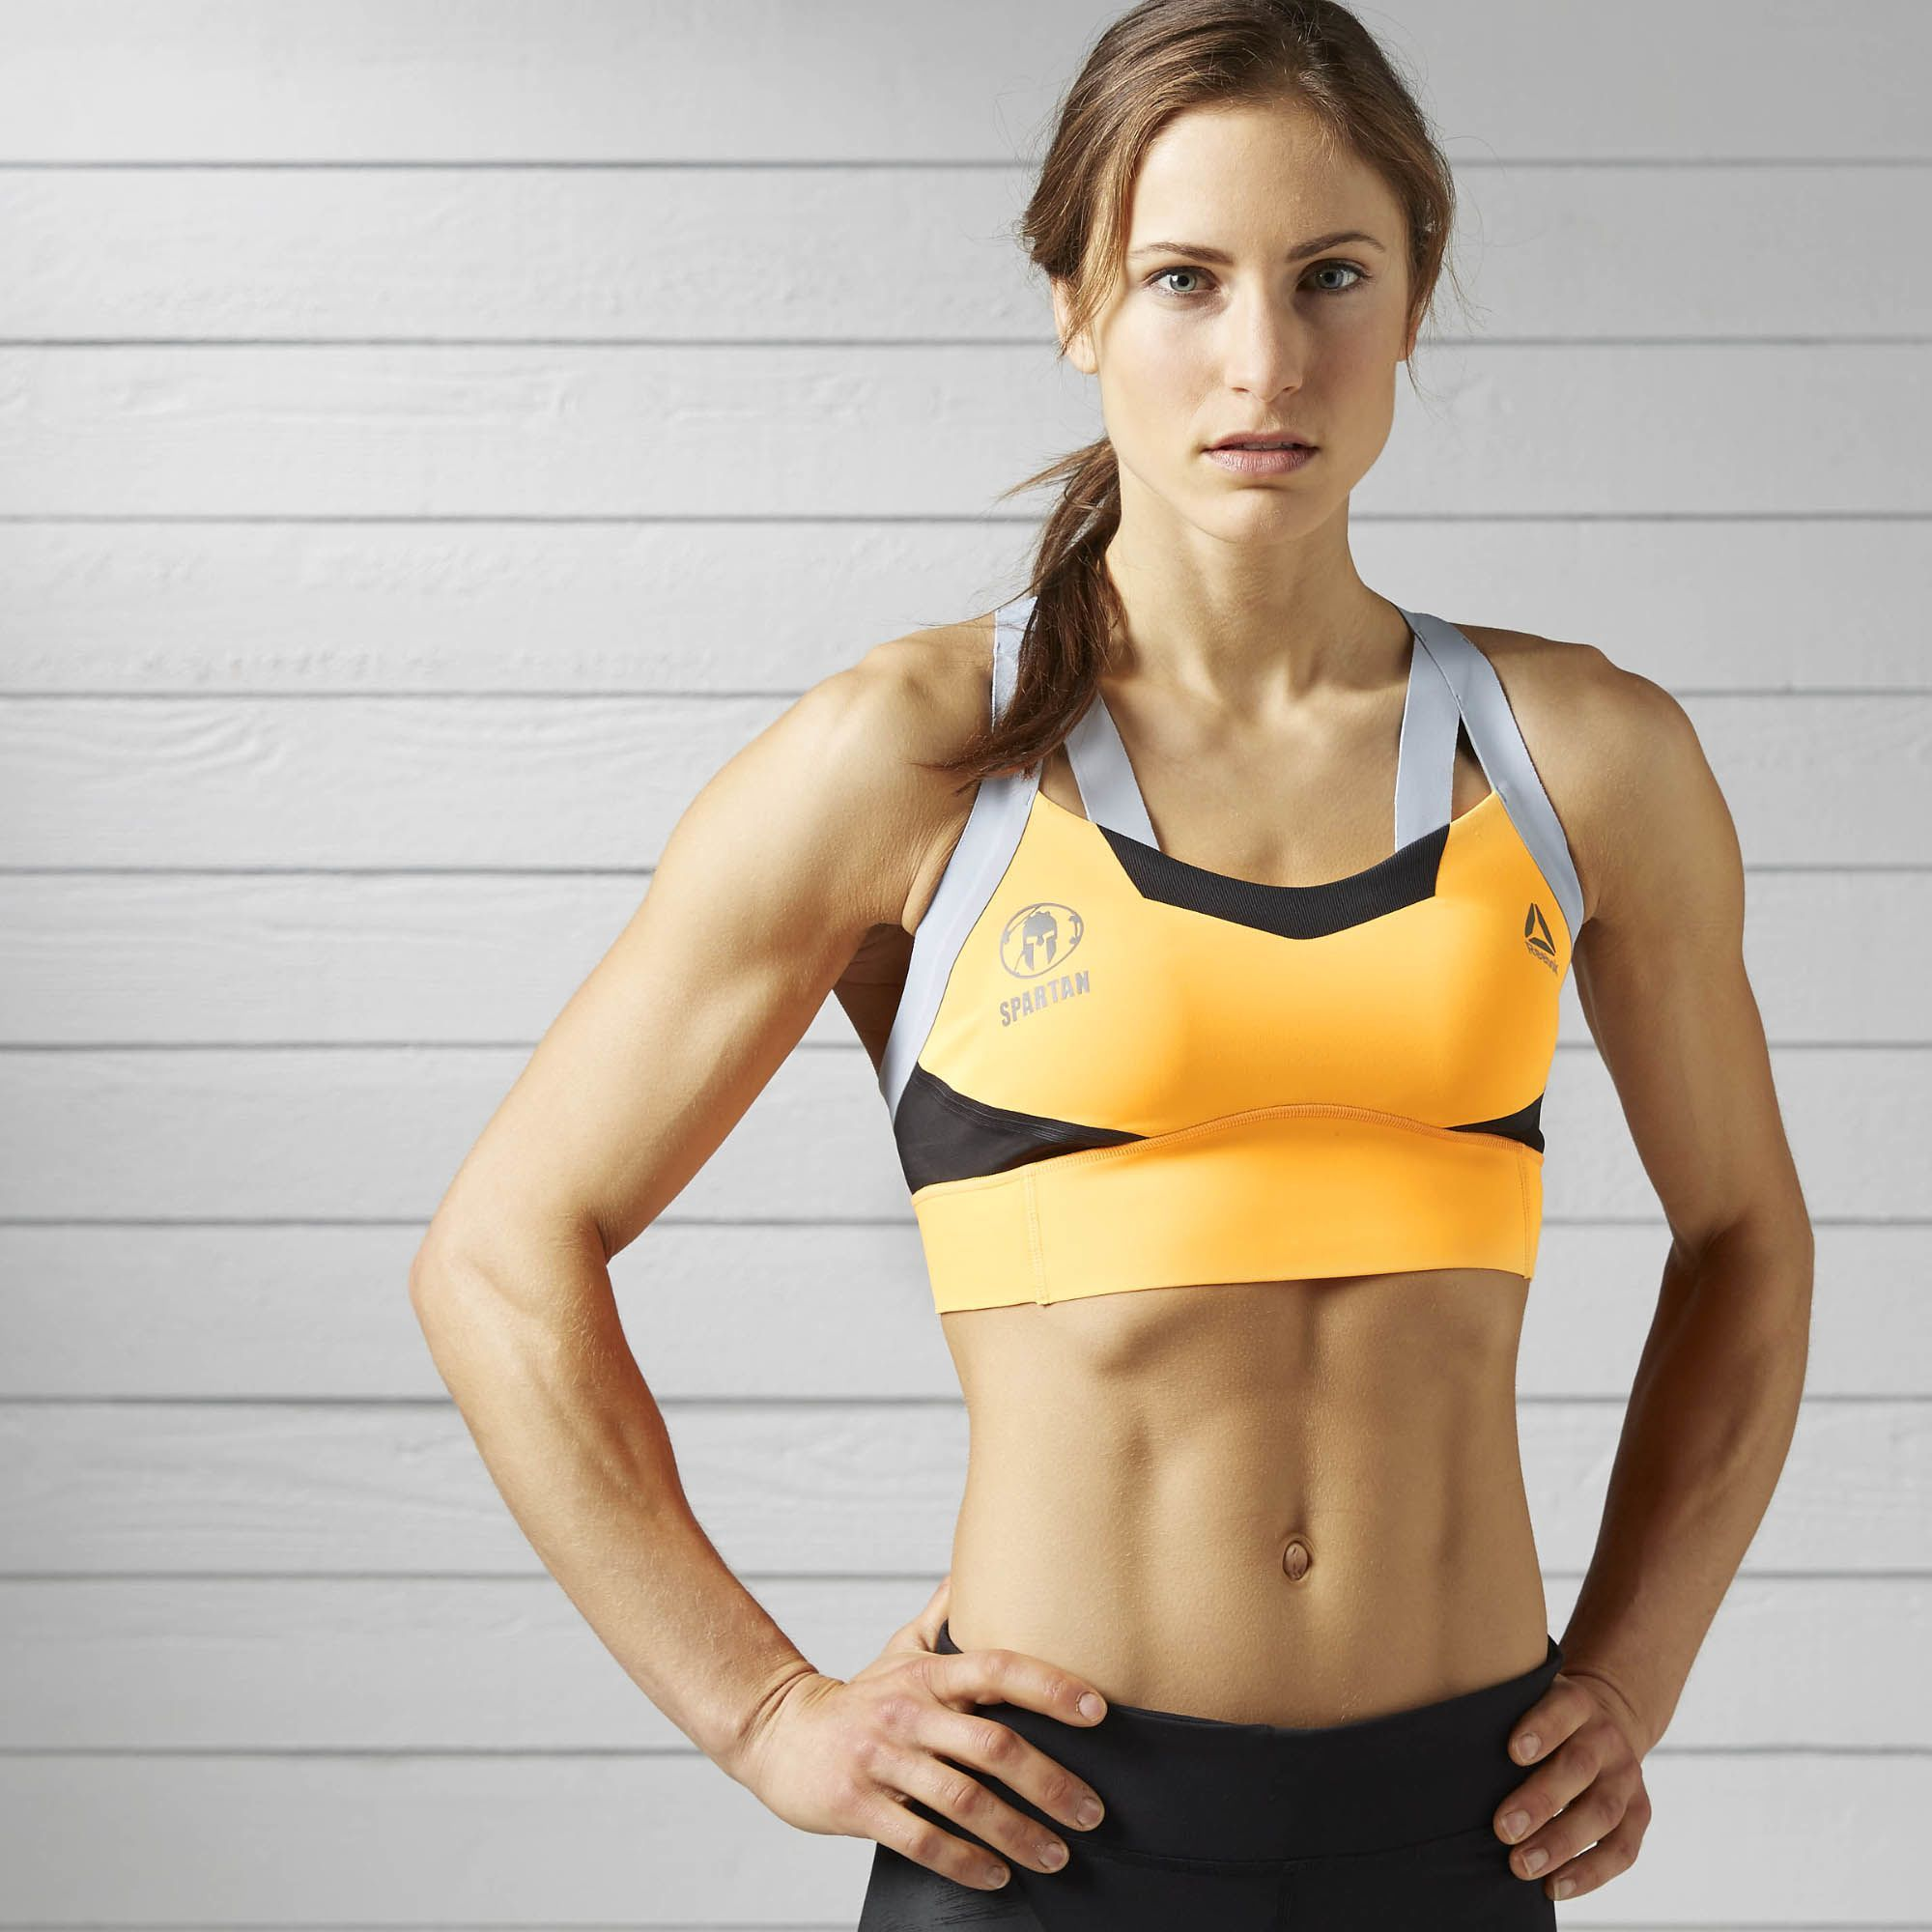 30c59c0ce3 Reebok - Reebok Spartan Pro Sports Bra | Sweat Gear | Women's sports ...